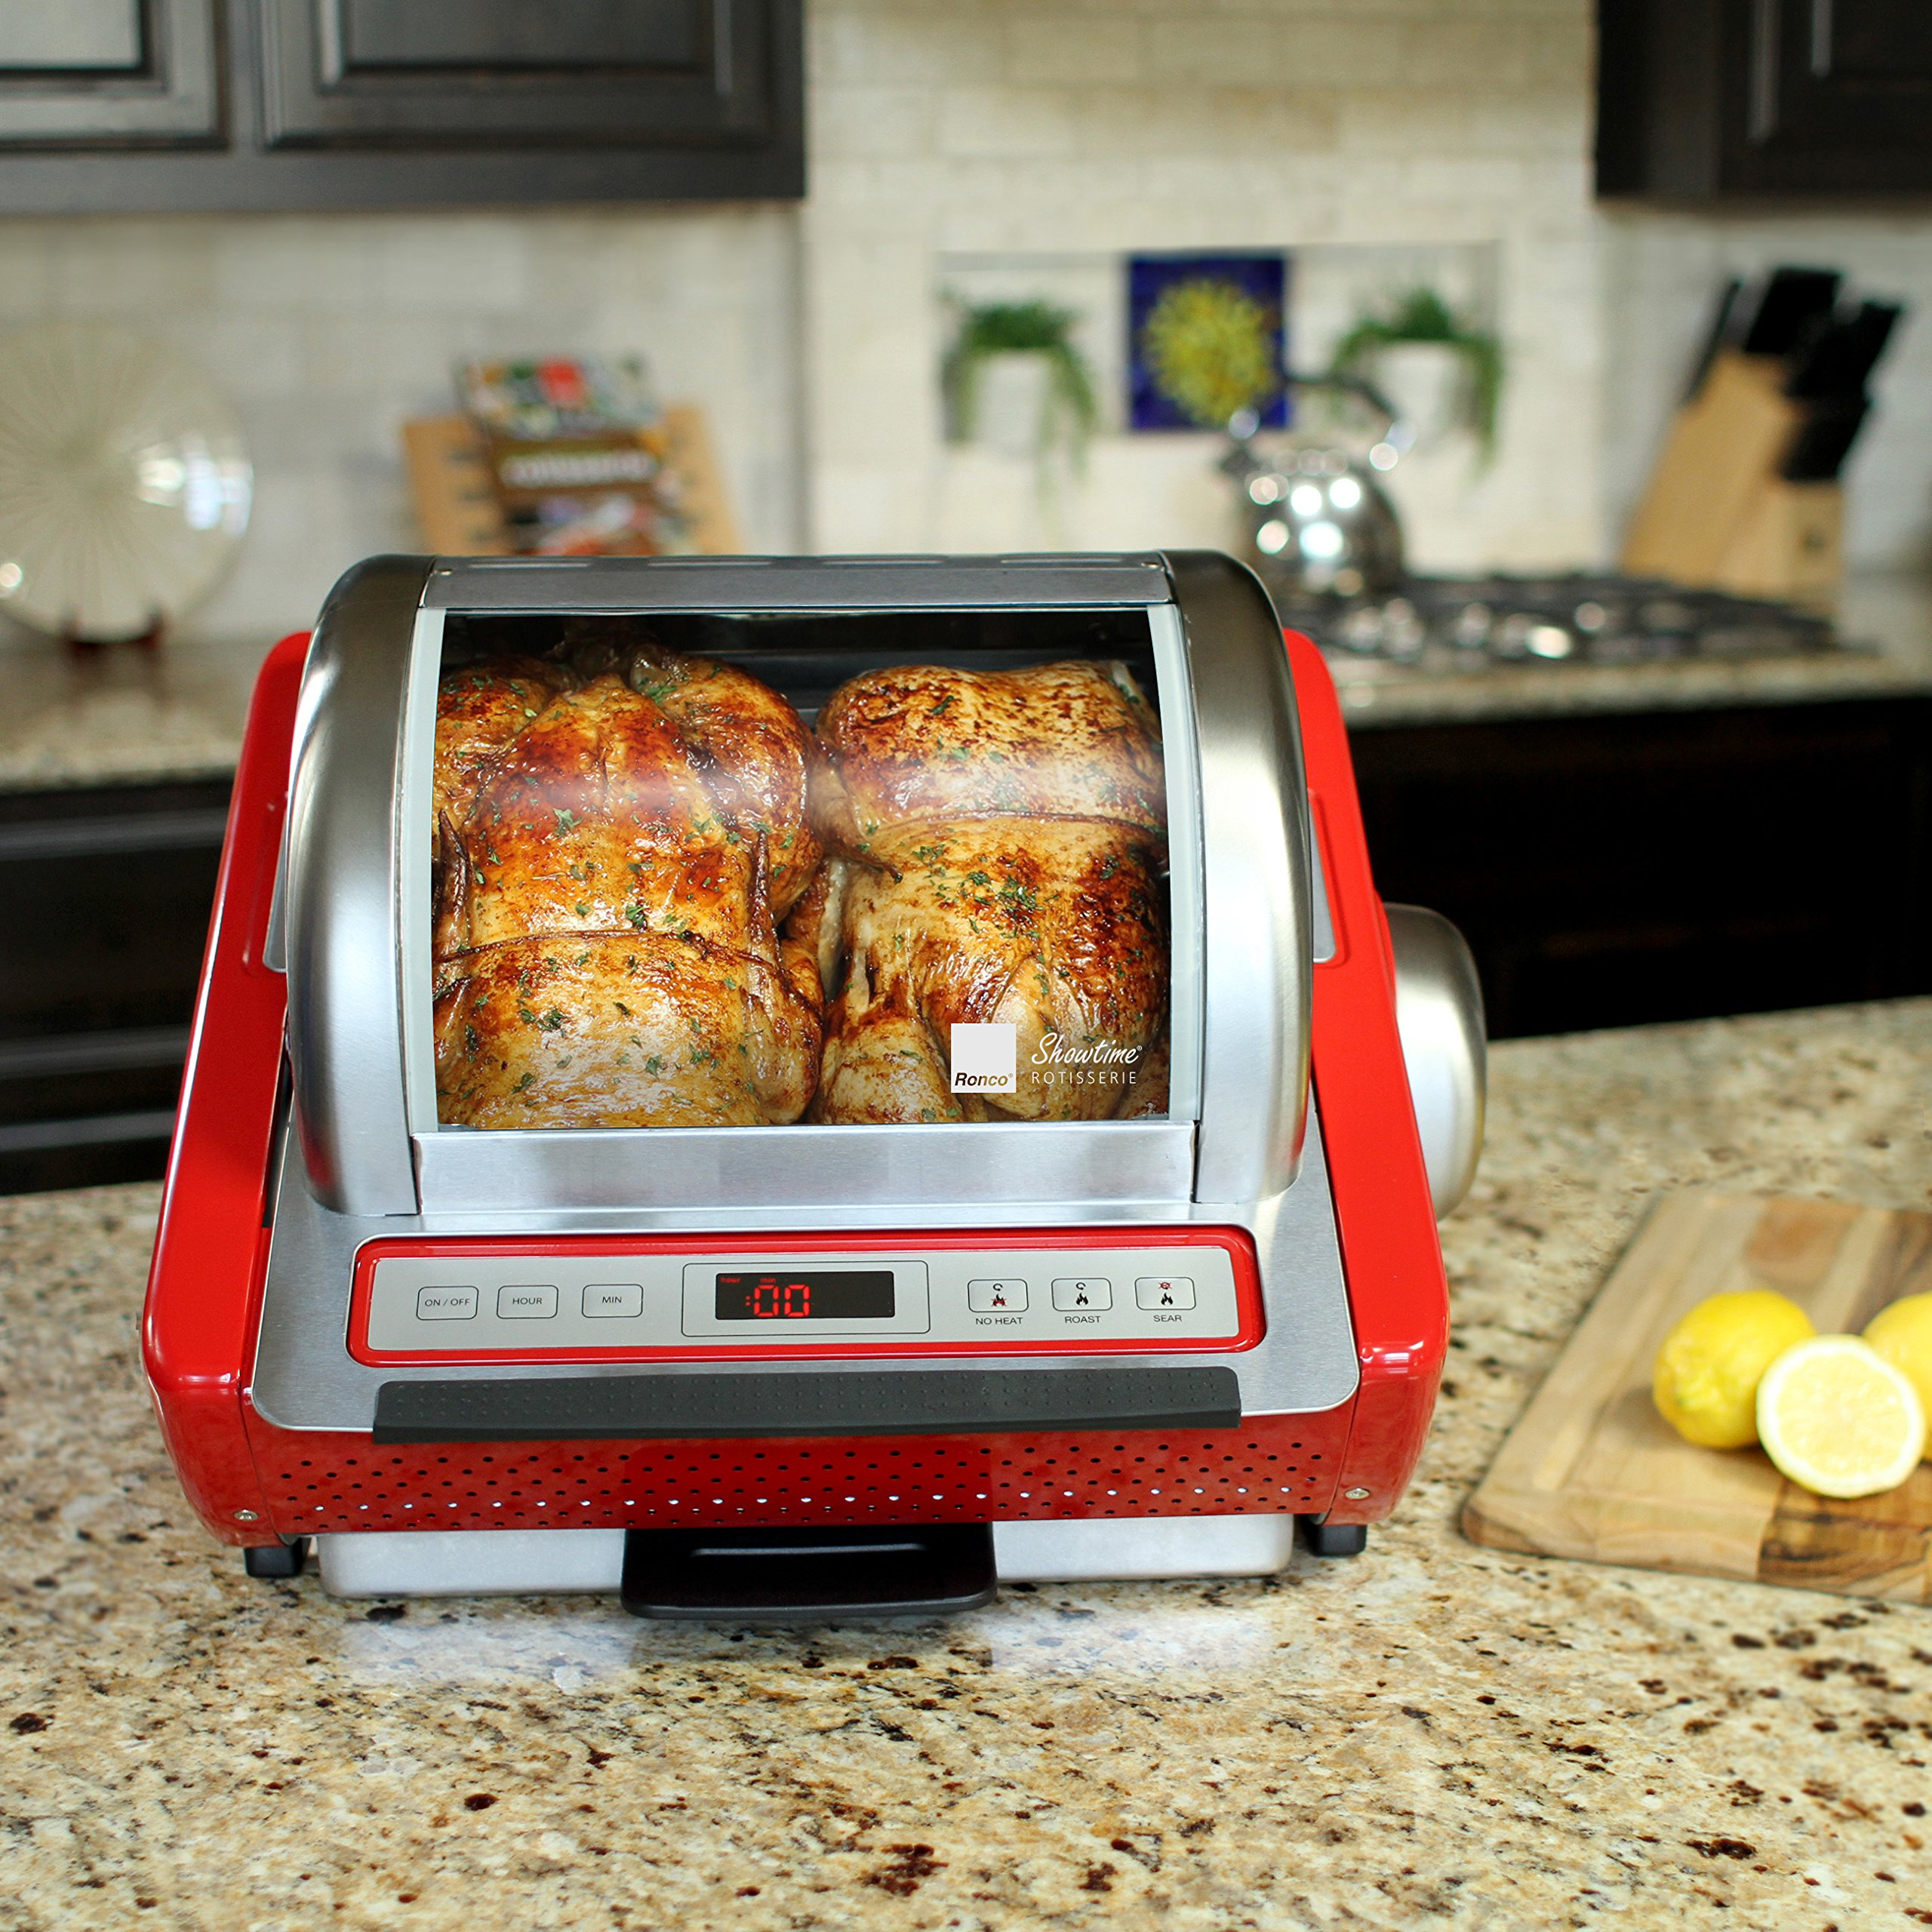 Ronco Digital Showtime Rotisserie and BBQ Oven, Red